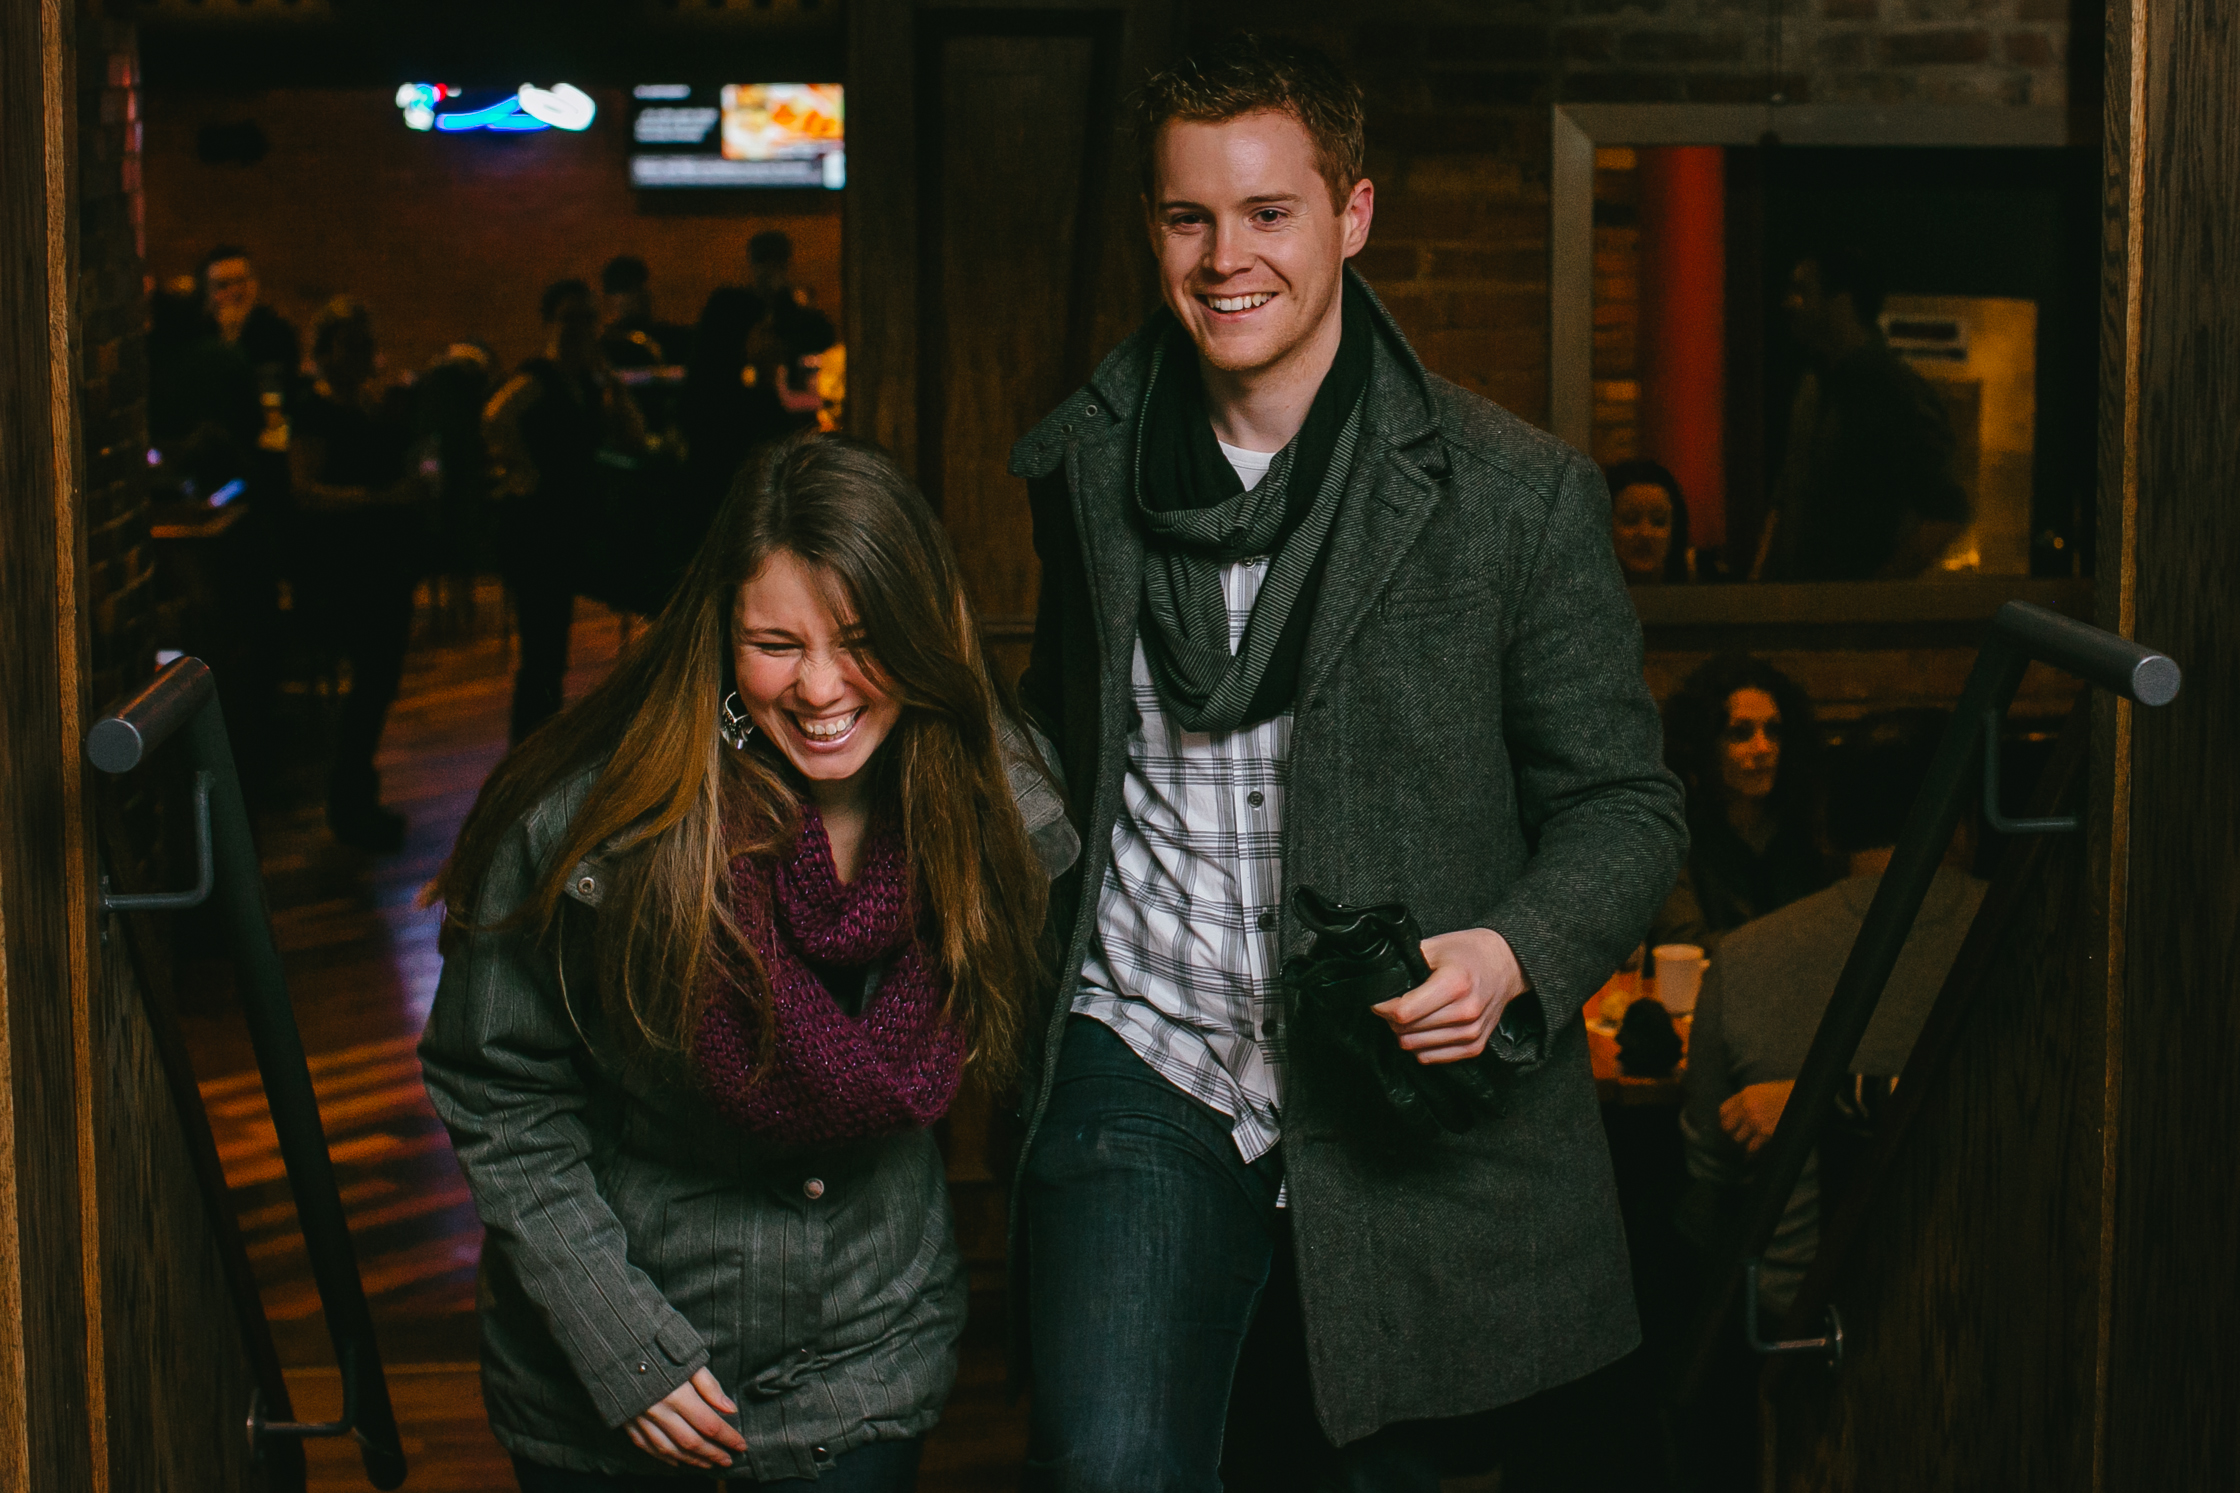 Image 33 of Cutest Christmas Proposal Ever | Brittany  and Tim